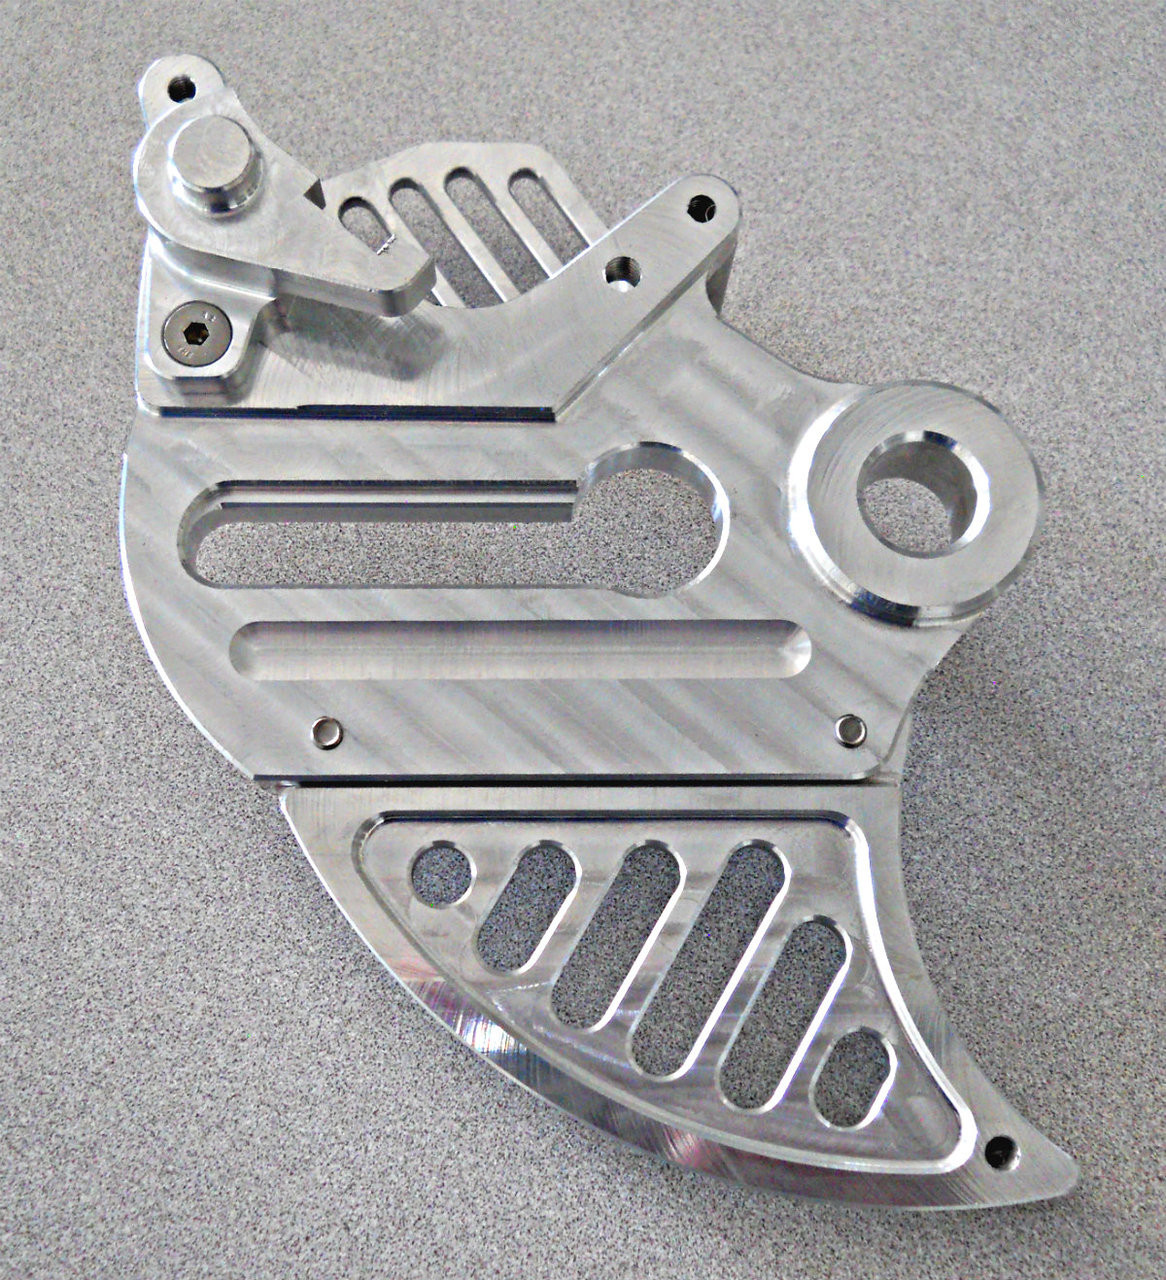 Topar Racing Rear Brake Rotor Disc Guard For All  2013-2020 GAS GAS 200cc-300cc Models ( Back Side View - Shown with Optional Caliper Guard and with an Aluminum Fin)